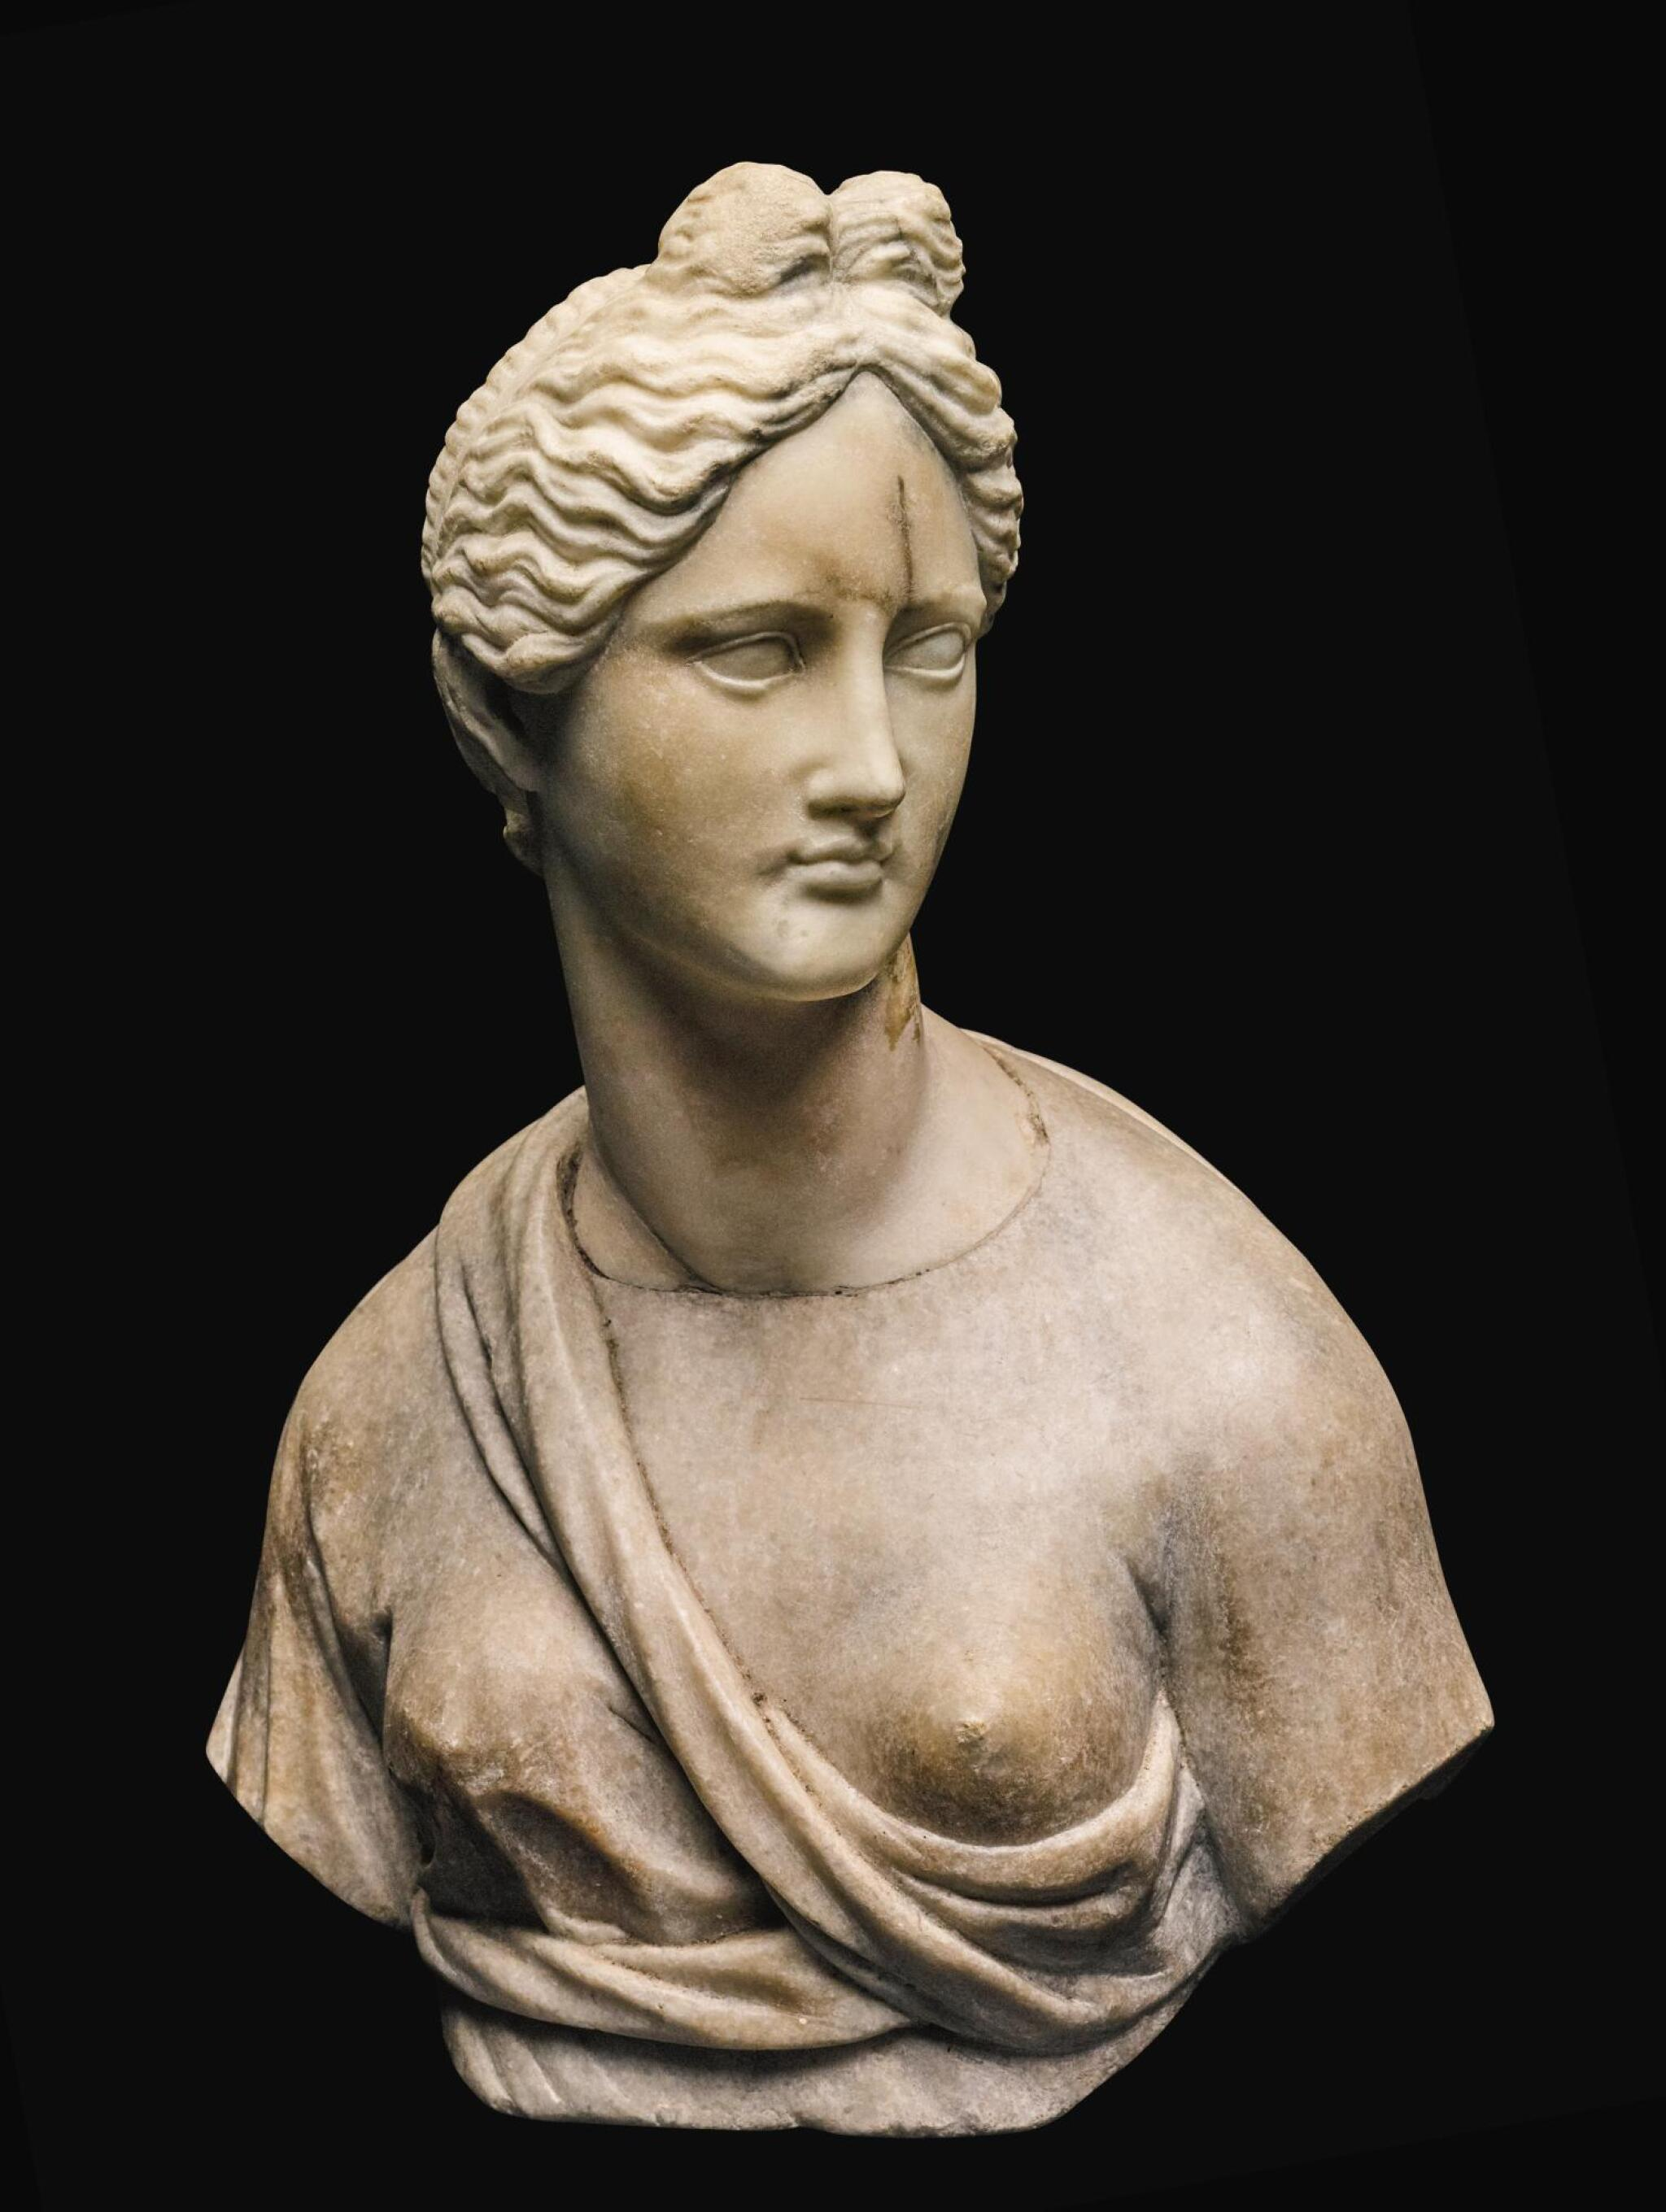 View full screen - View 1 of Lot 32. AN ITALIAN MARBLE BUST OF A GODDESS, AFTER THE ANTIQUE, 16TH/17TH CENTURY.